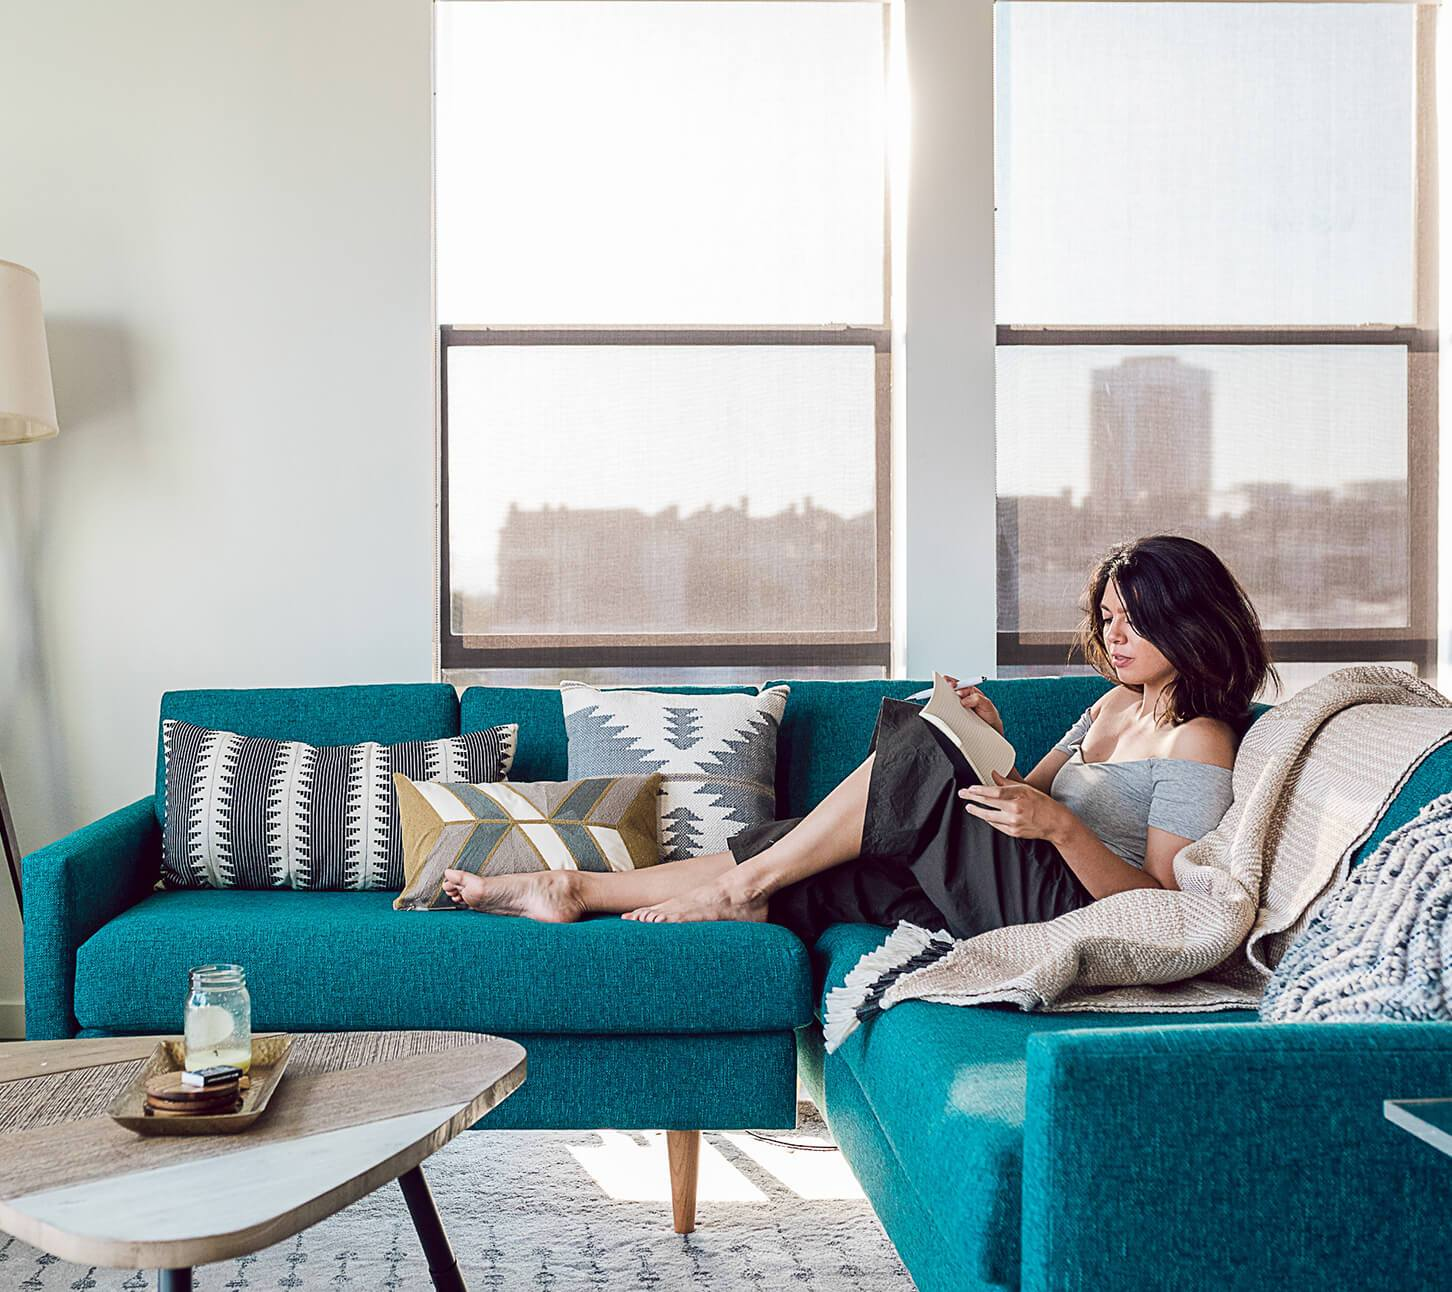 A model rests on a turquoise couch while reading a book.